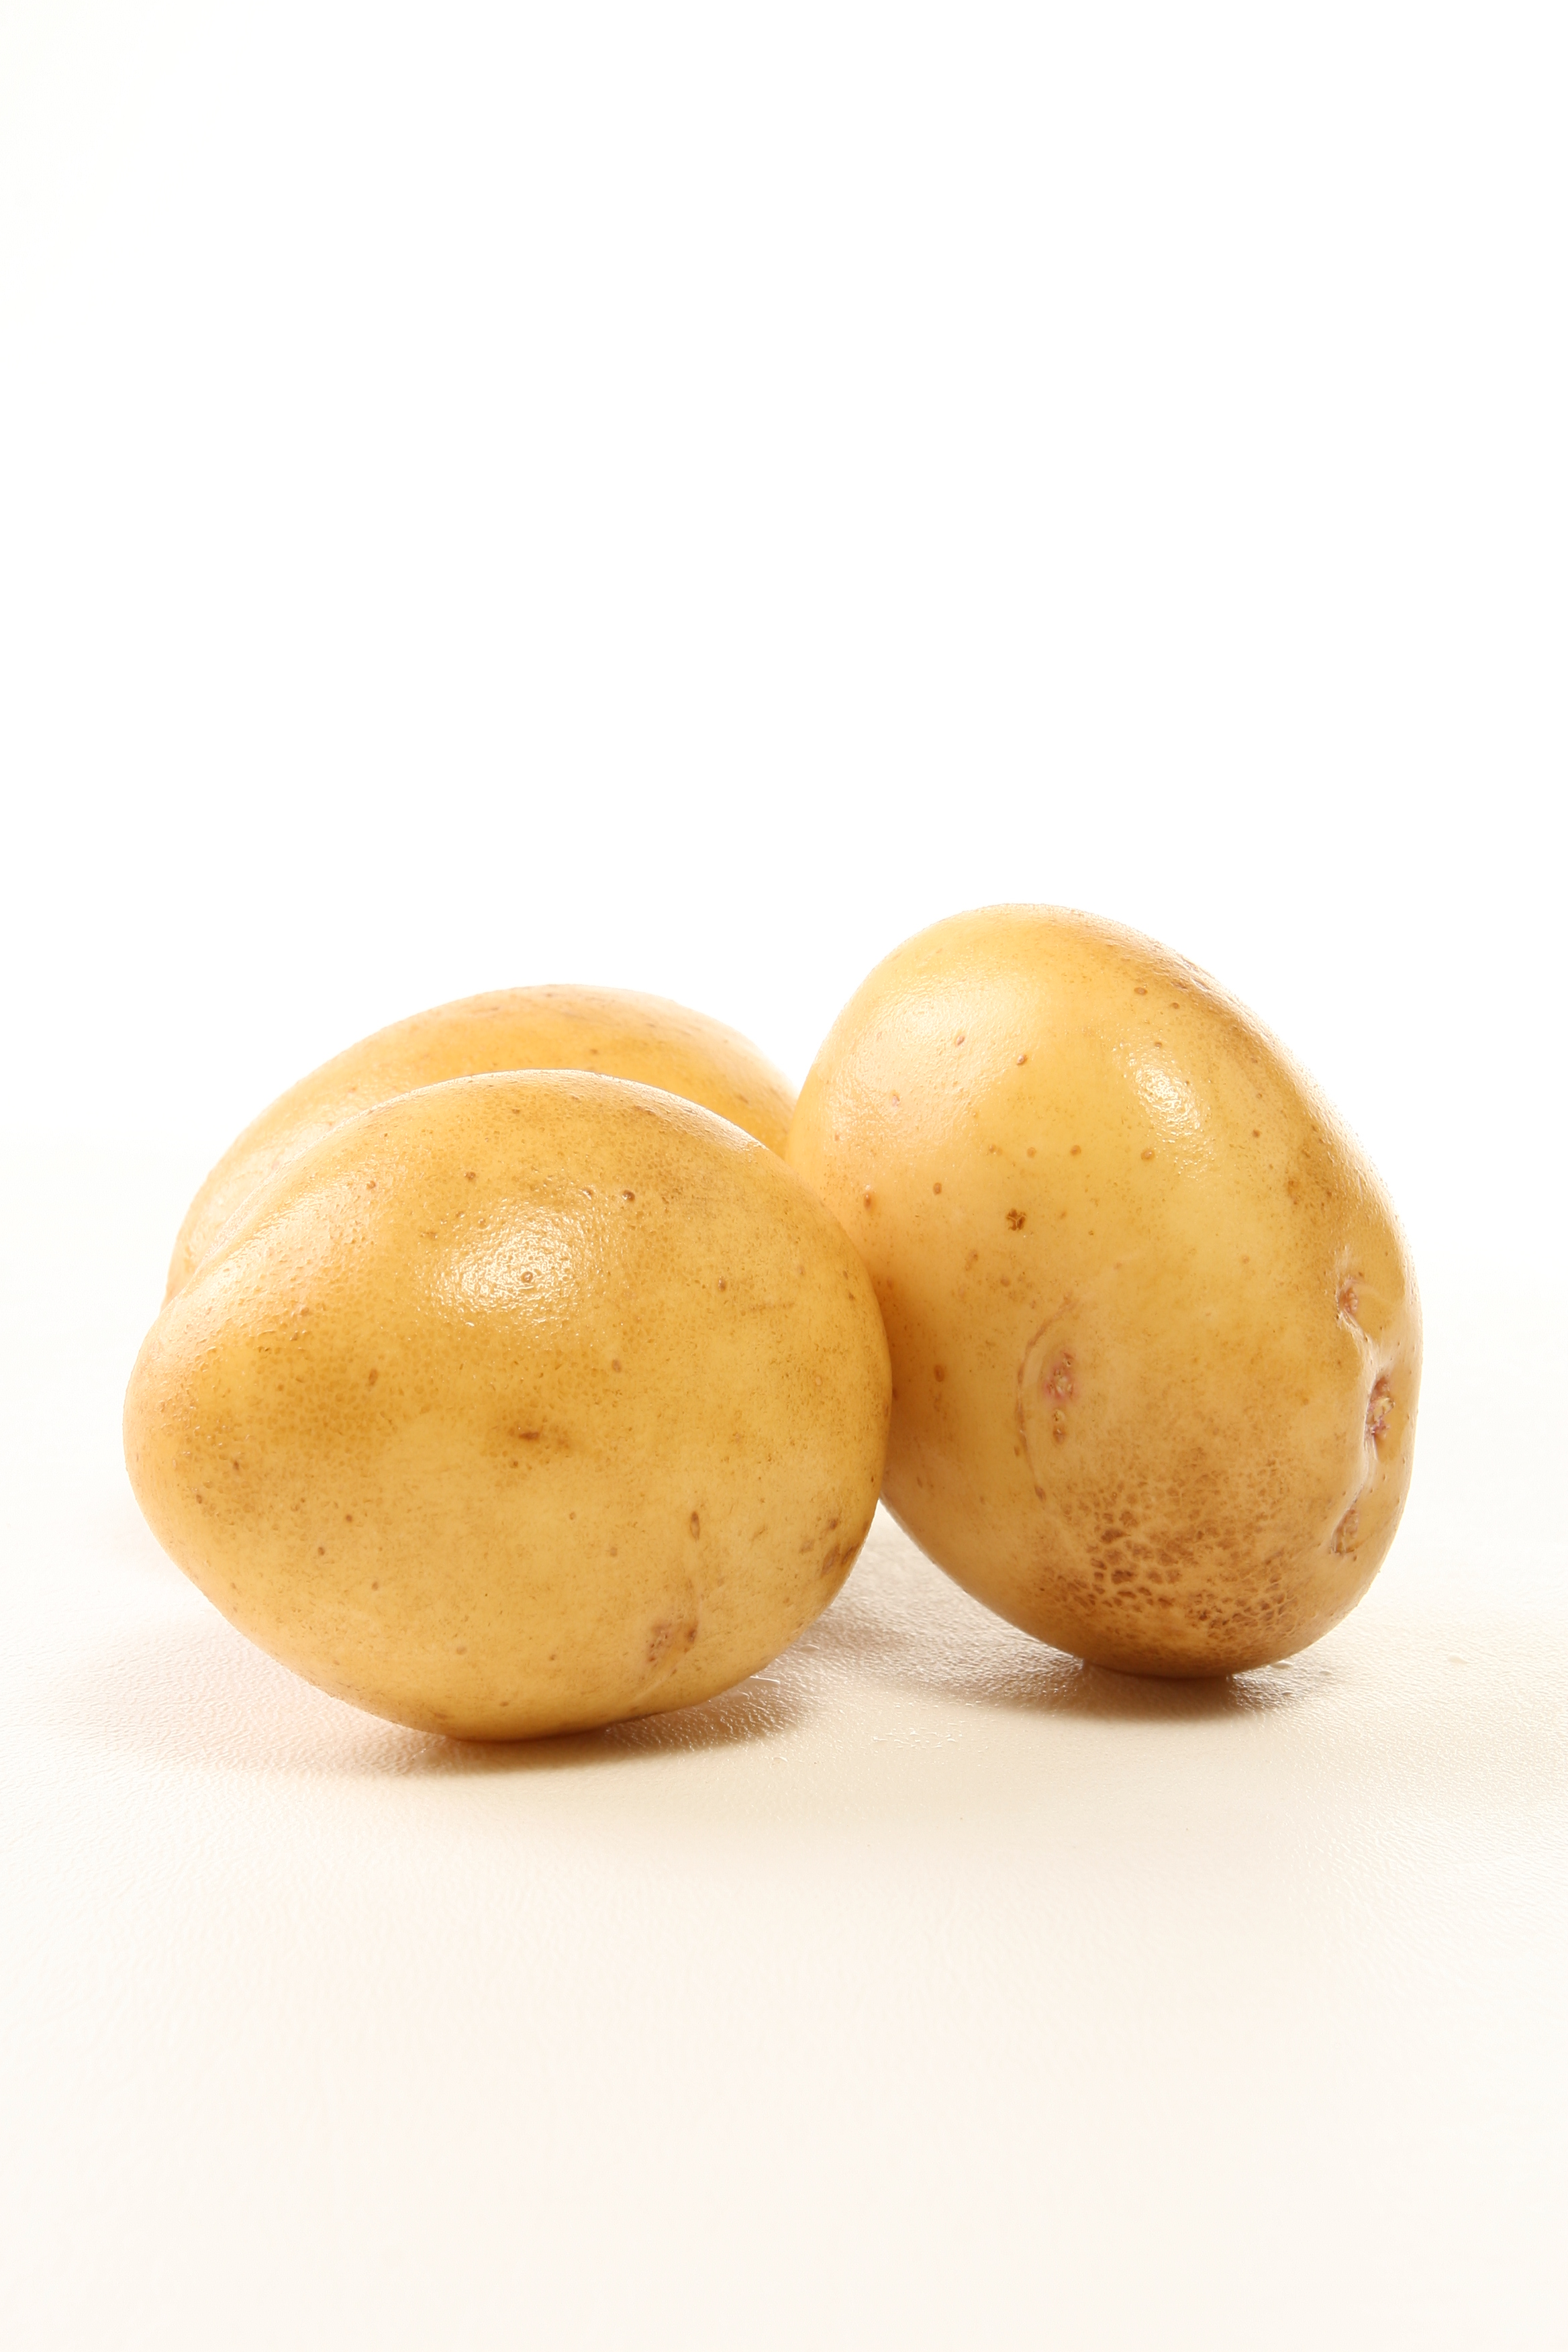 potato dating site Potatoes o'brien is a classic side dish dating back to the early 1900's made from fried, diced potatoes, plus red and green bell peppers and other seasonings.